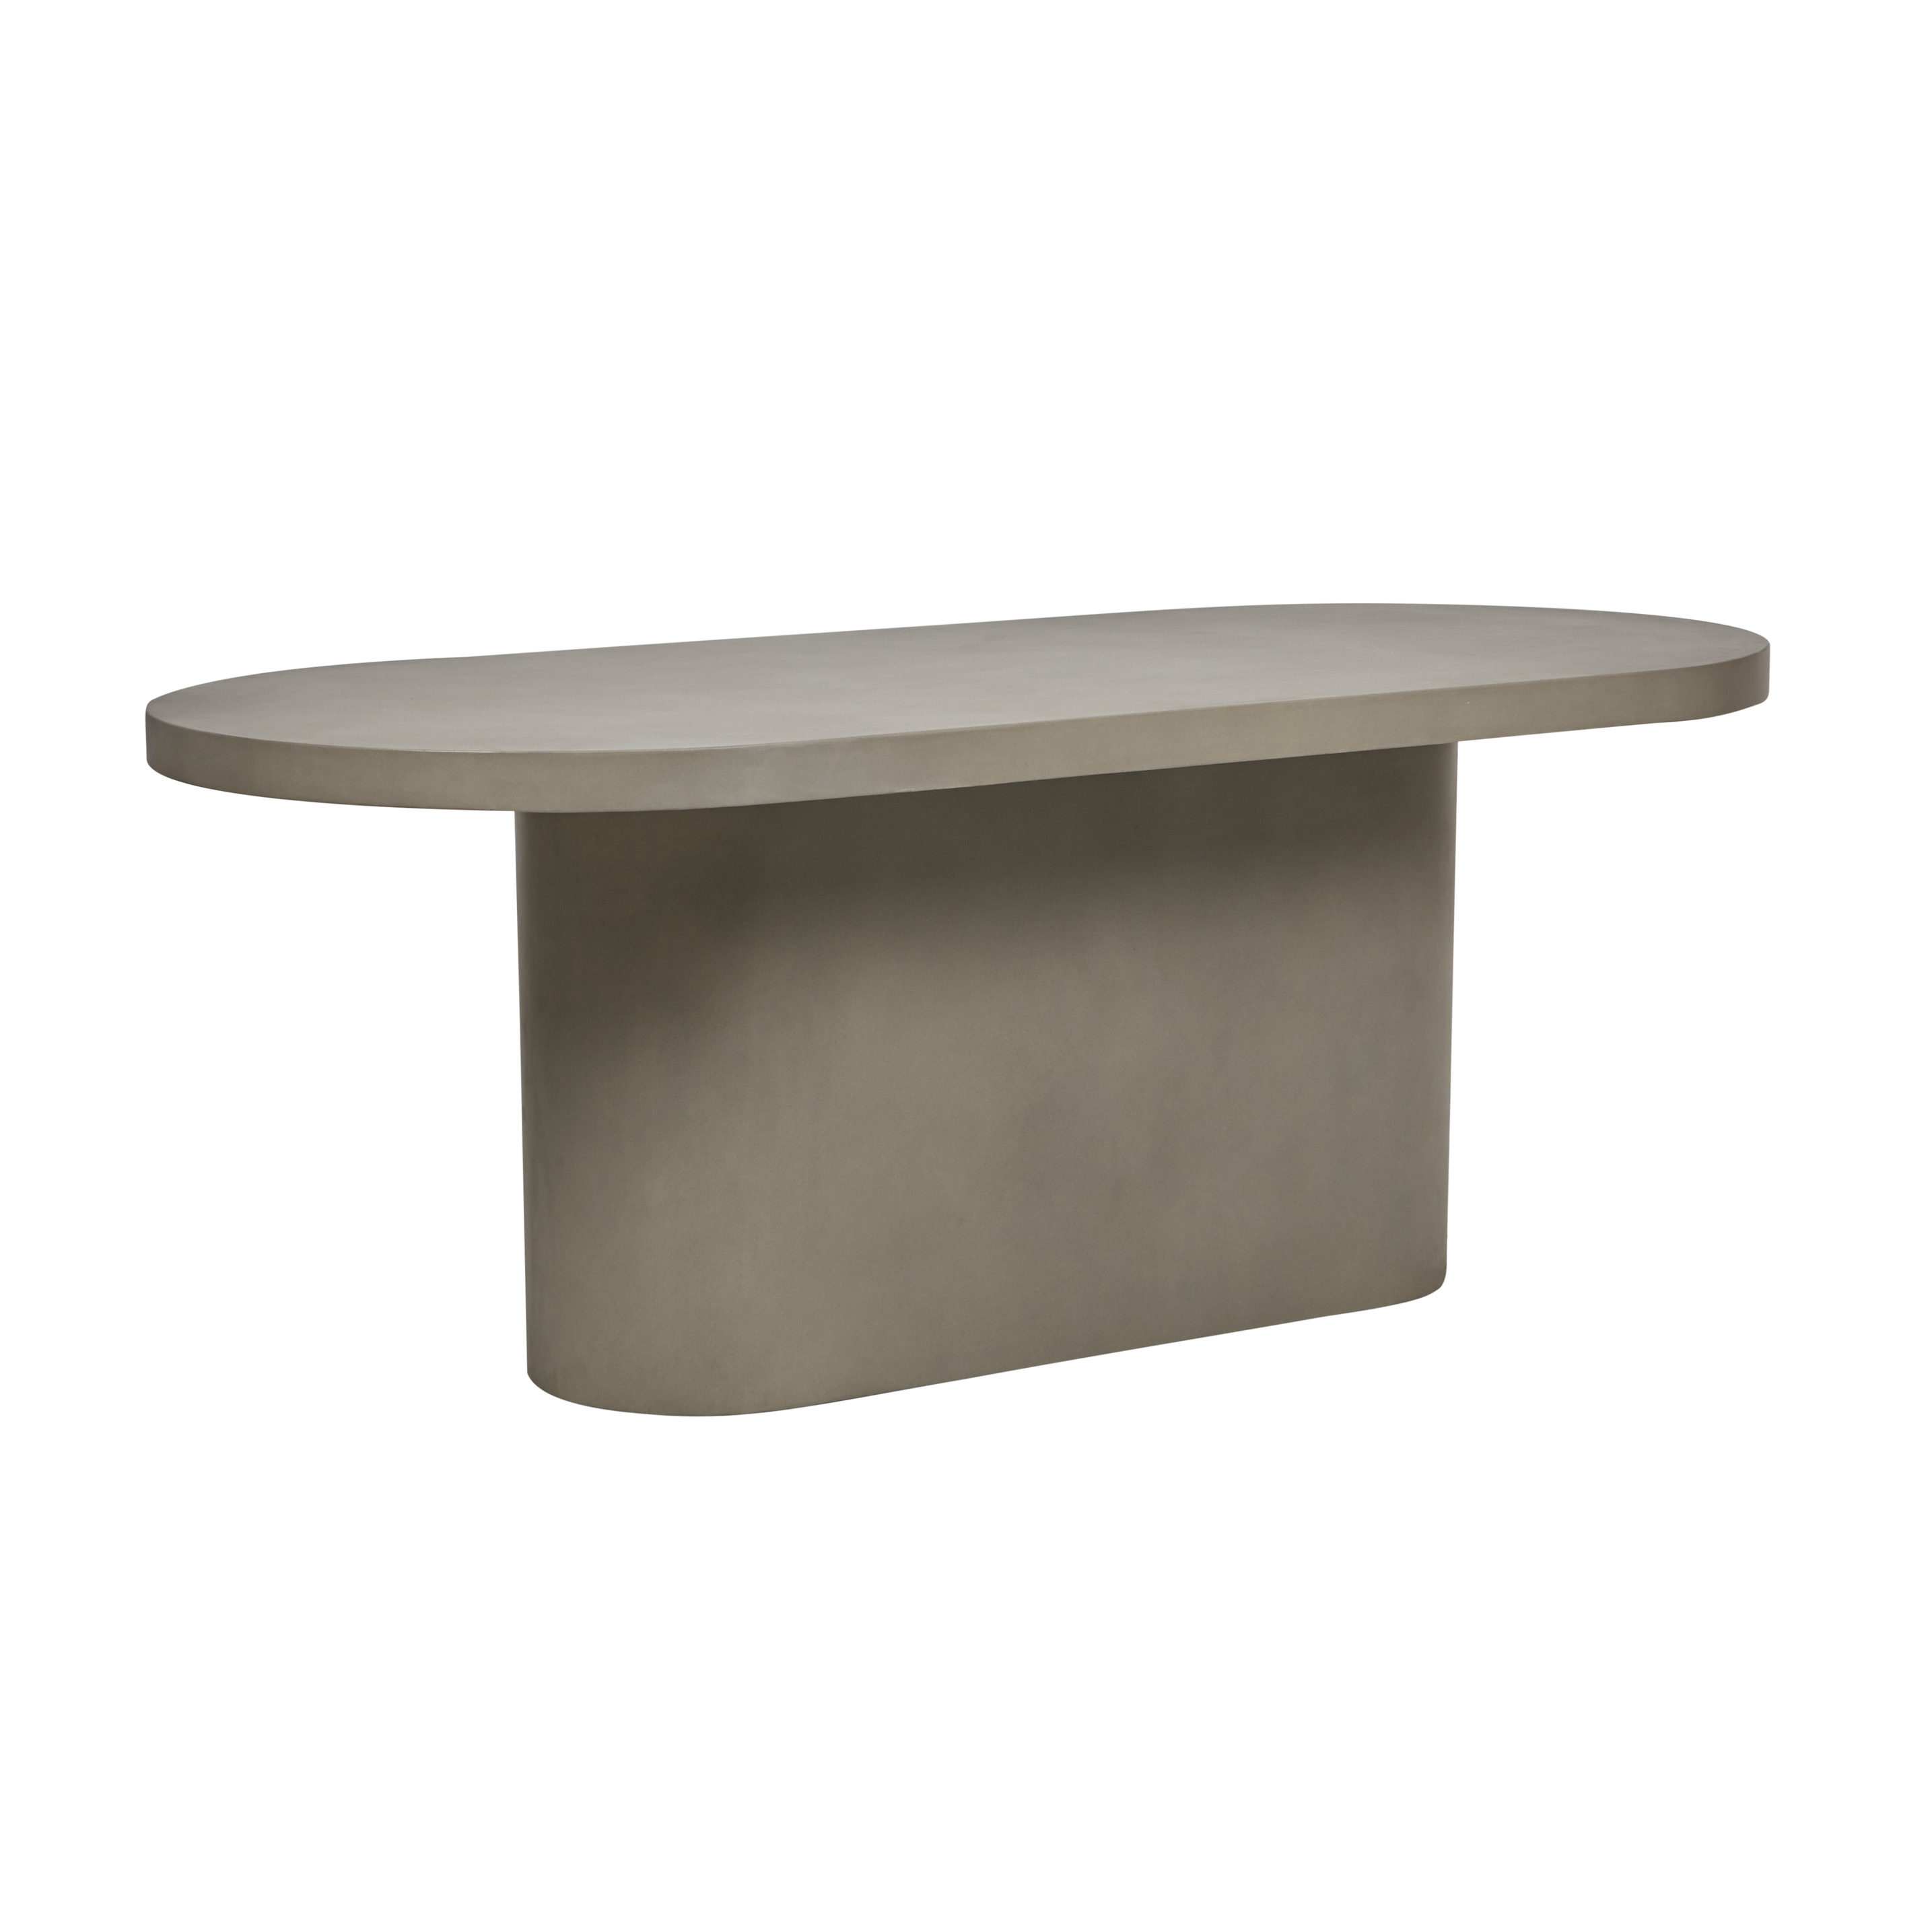 Furniture Hero-Images Dining-Tables ossa-concrete-oval-02